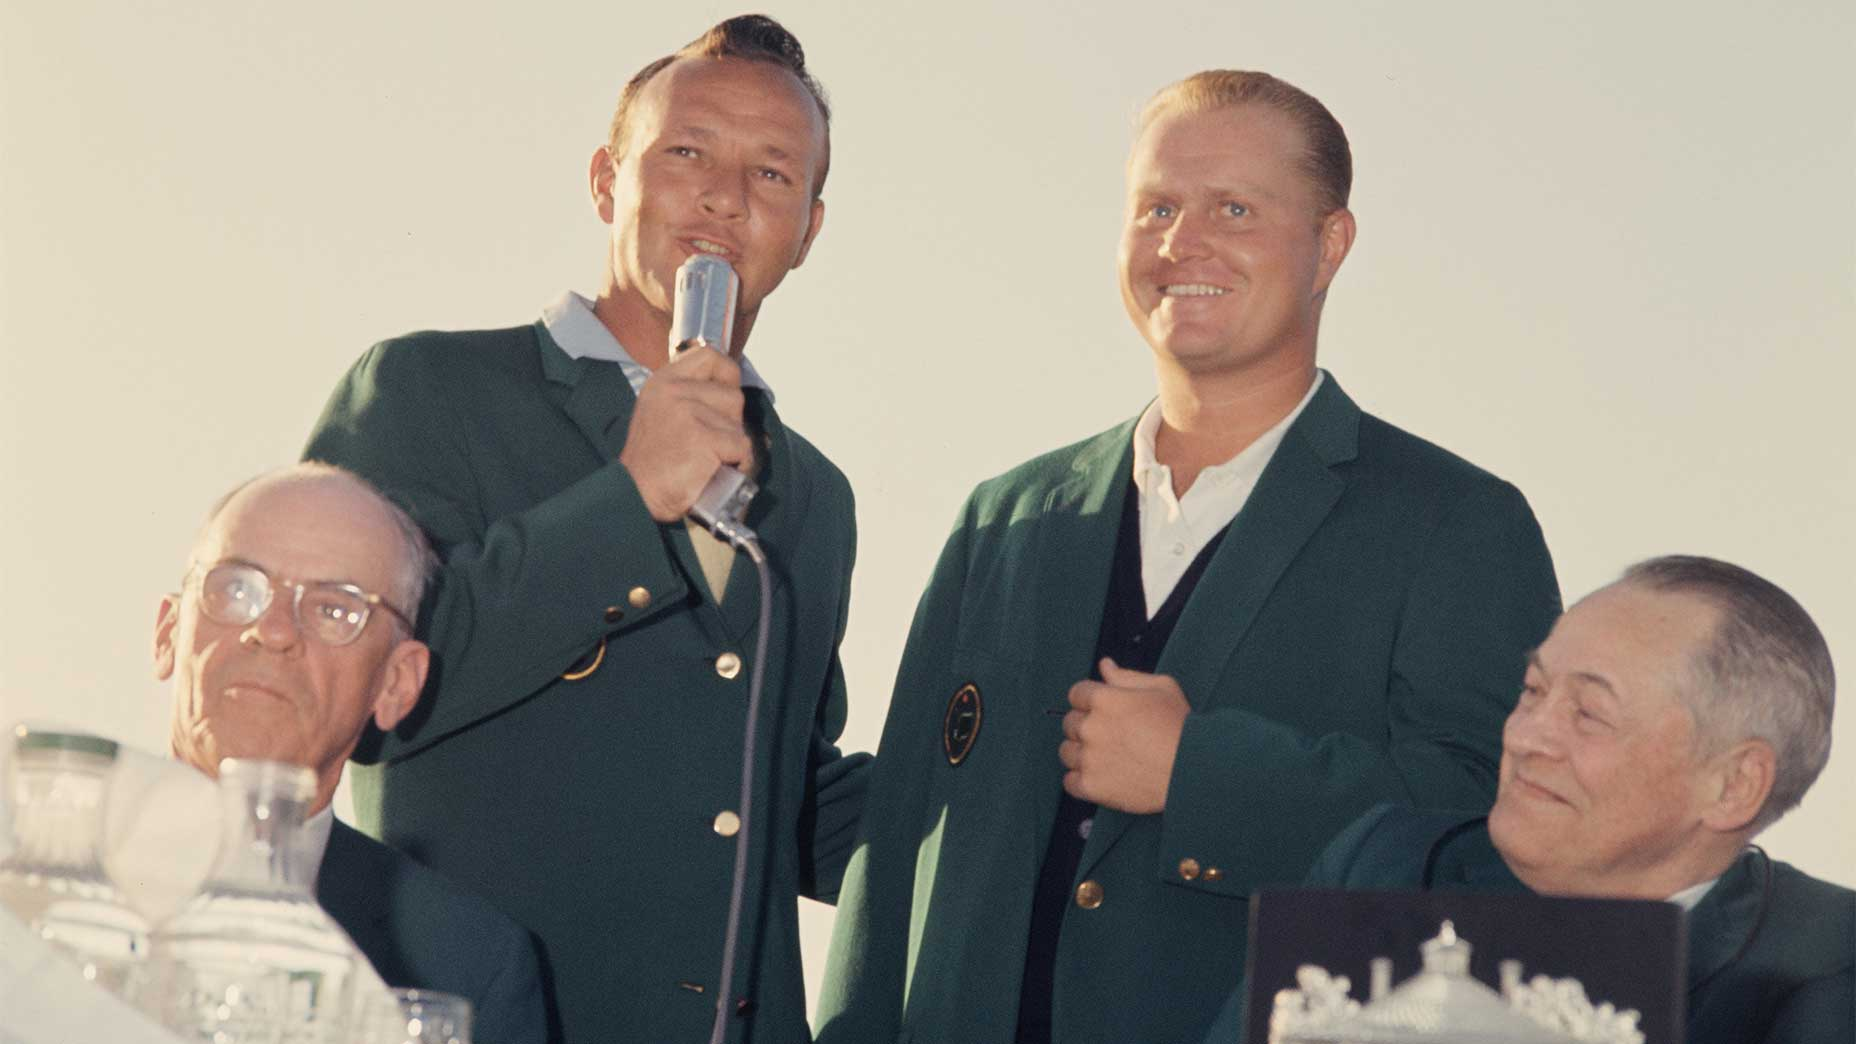 Jack Nicklaus and Arnold Palmer at the 1963 Masters.